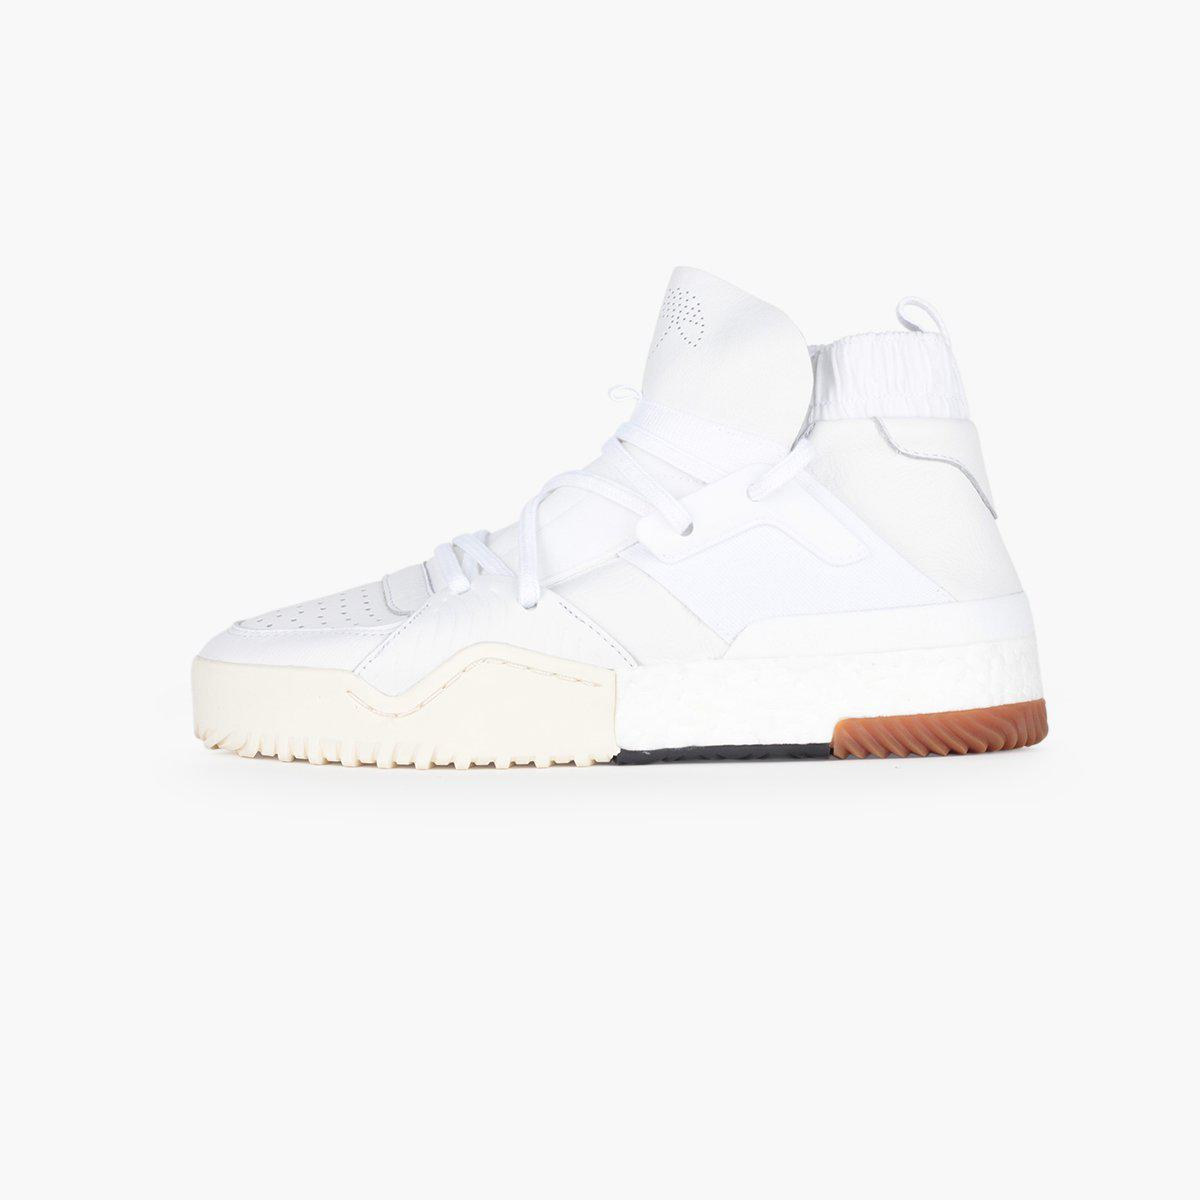 907e142c9 adidas Originals. Men s White Adidas Originals By Alexander Wang Aw Bball  Mid Boost